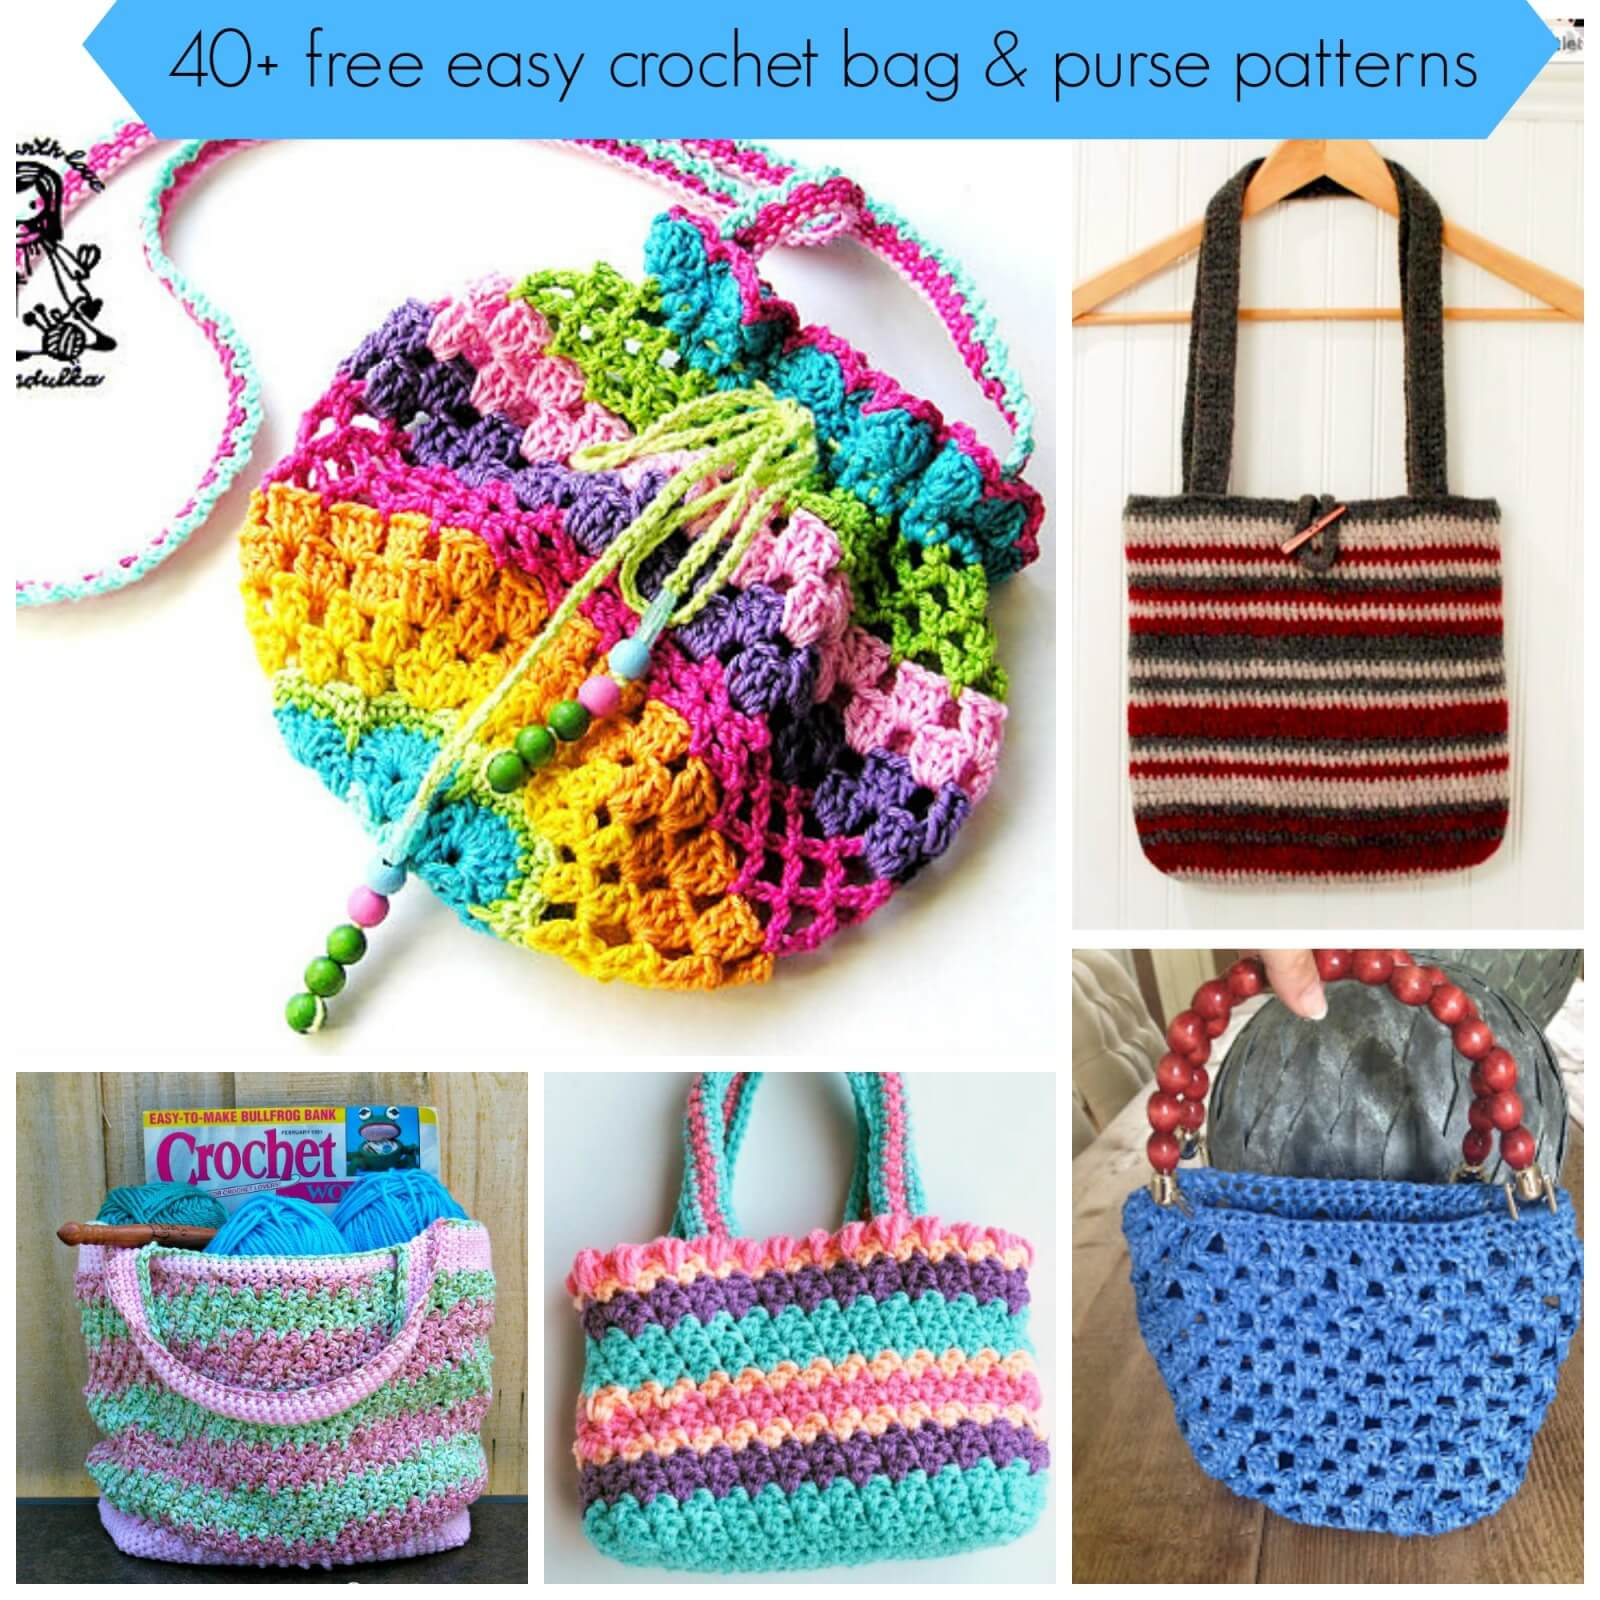 Crochet Purse Patterns Free Easy : 40+ free easy crochet bag & purse patterns